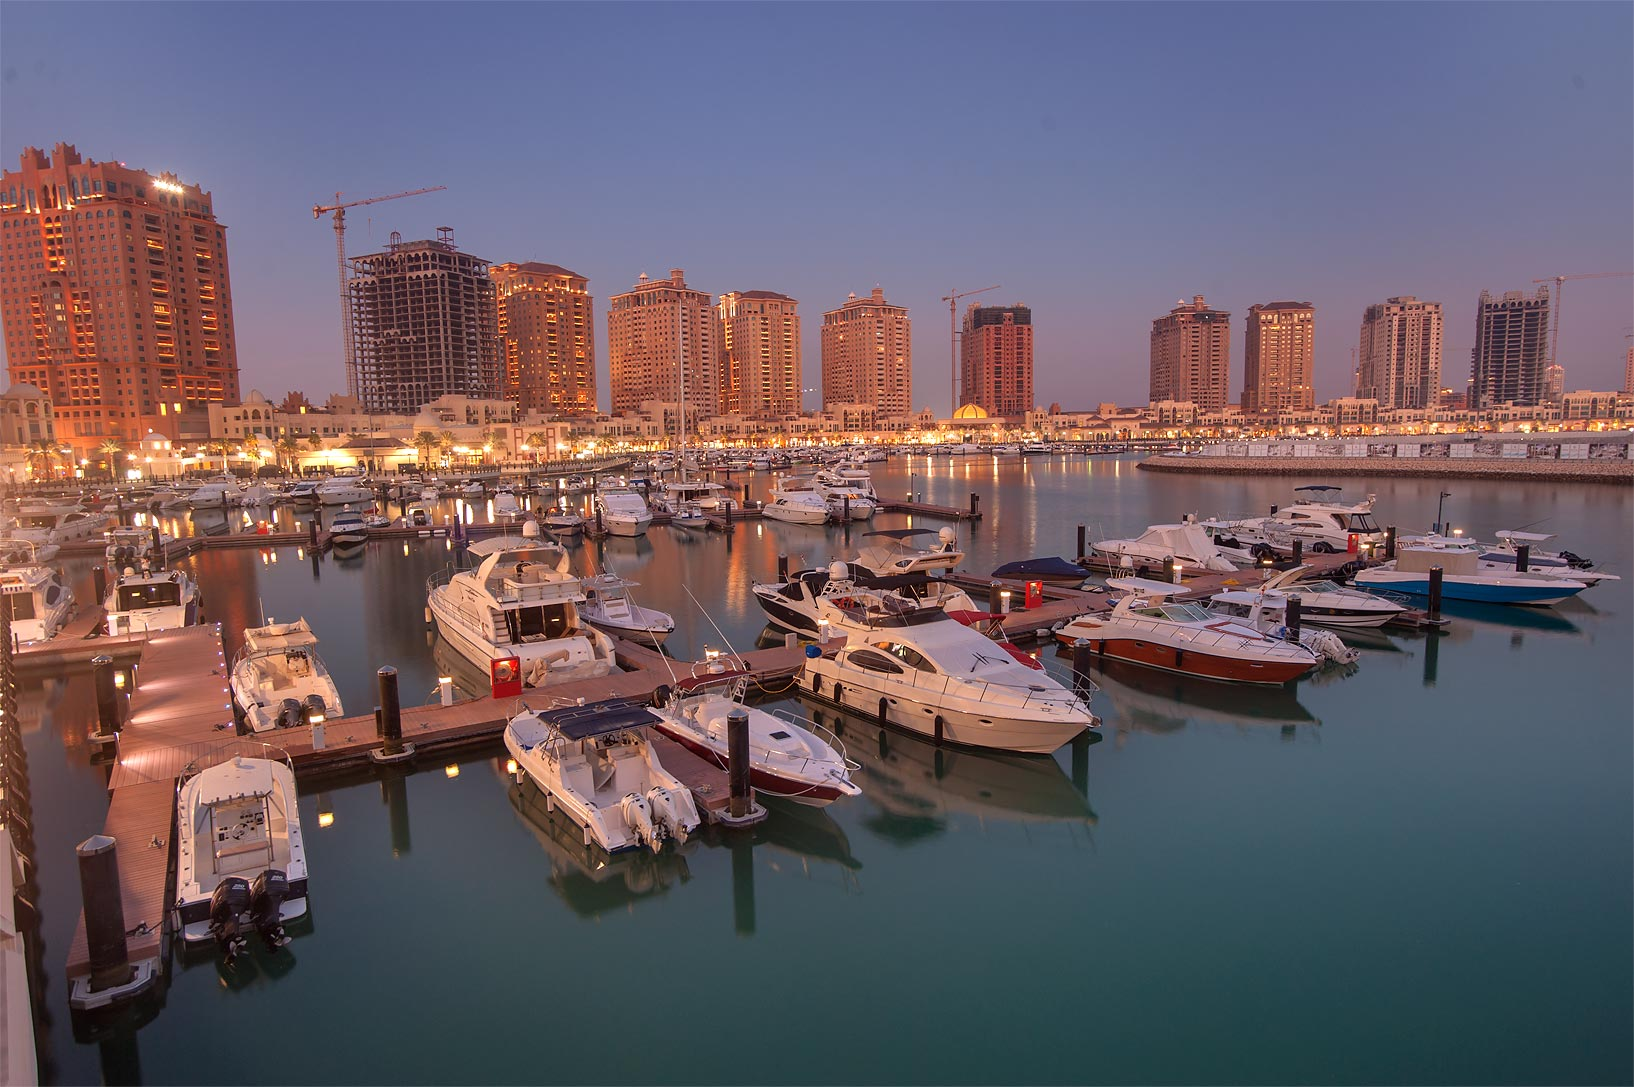 Marina with yachts on Pier E in Porto Arabia in the Pearl Qatar development. Doha, Qatar